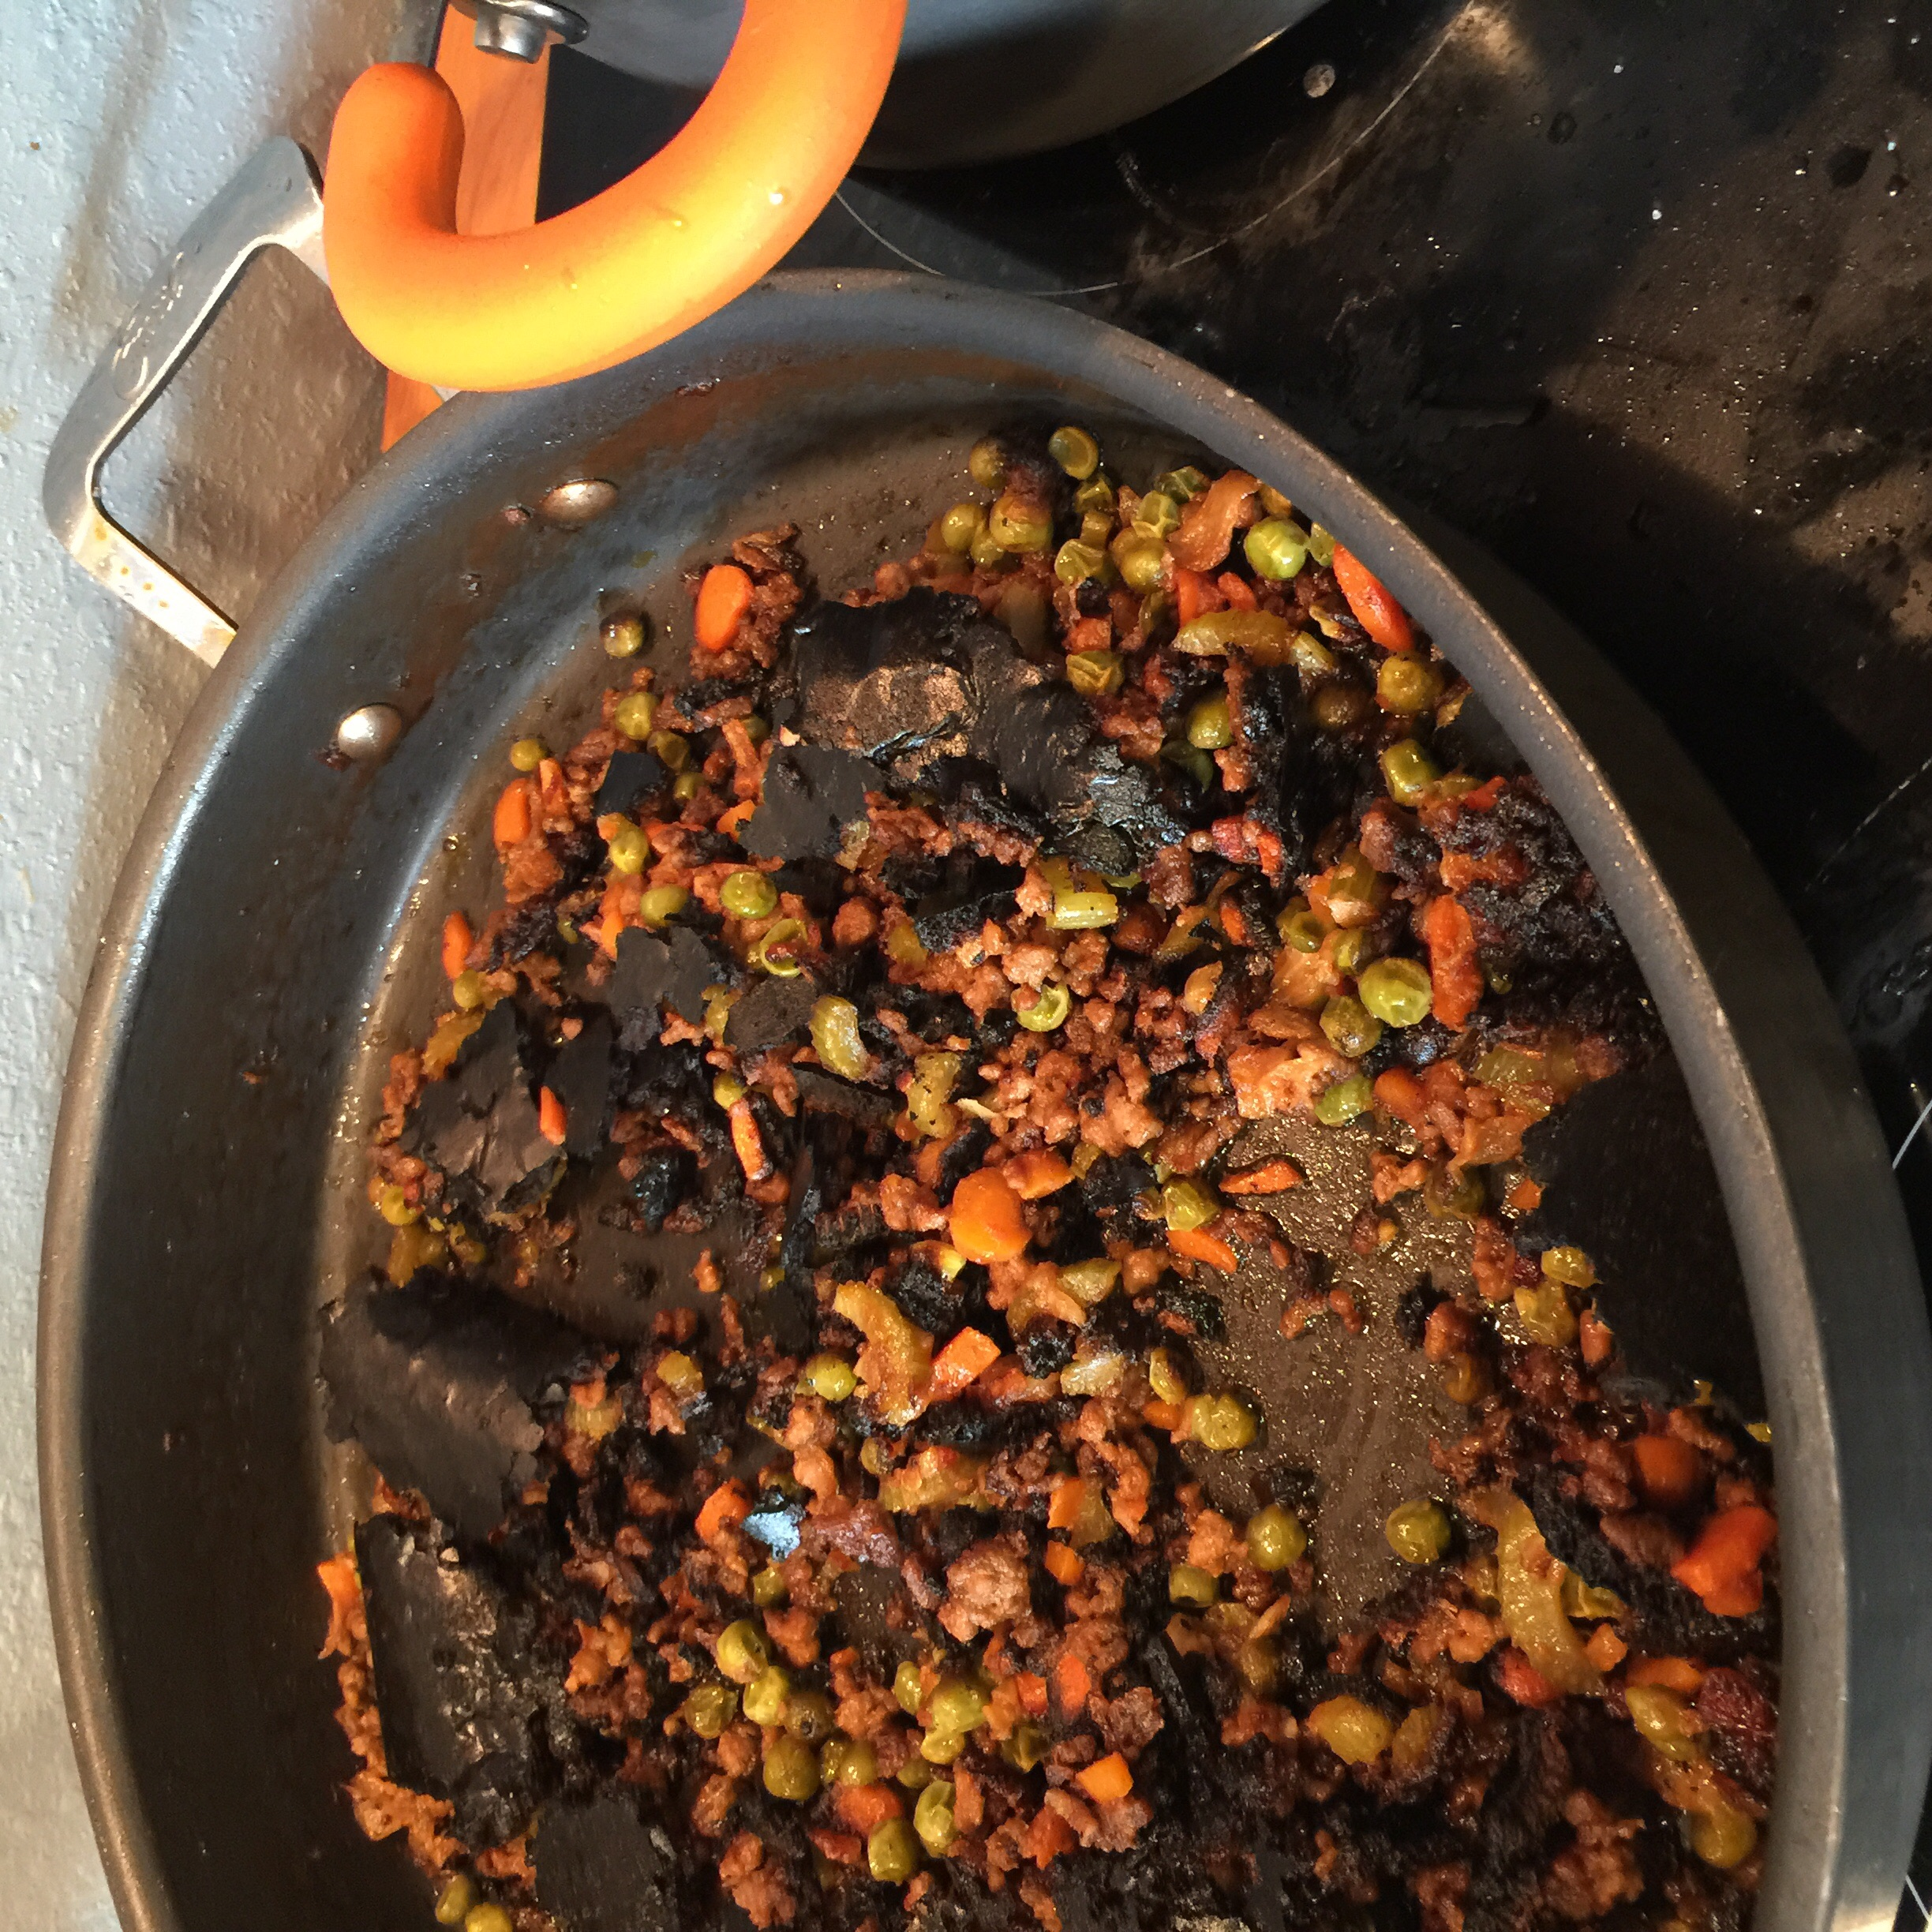 Beef Bolognese gone wrong